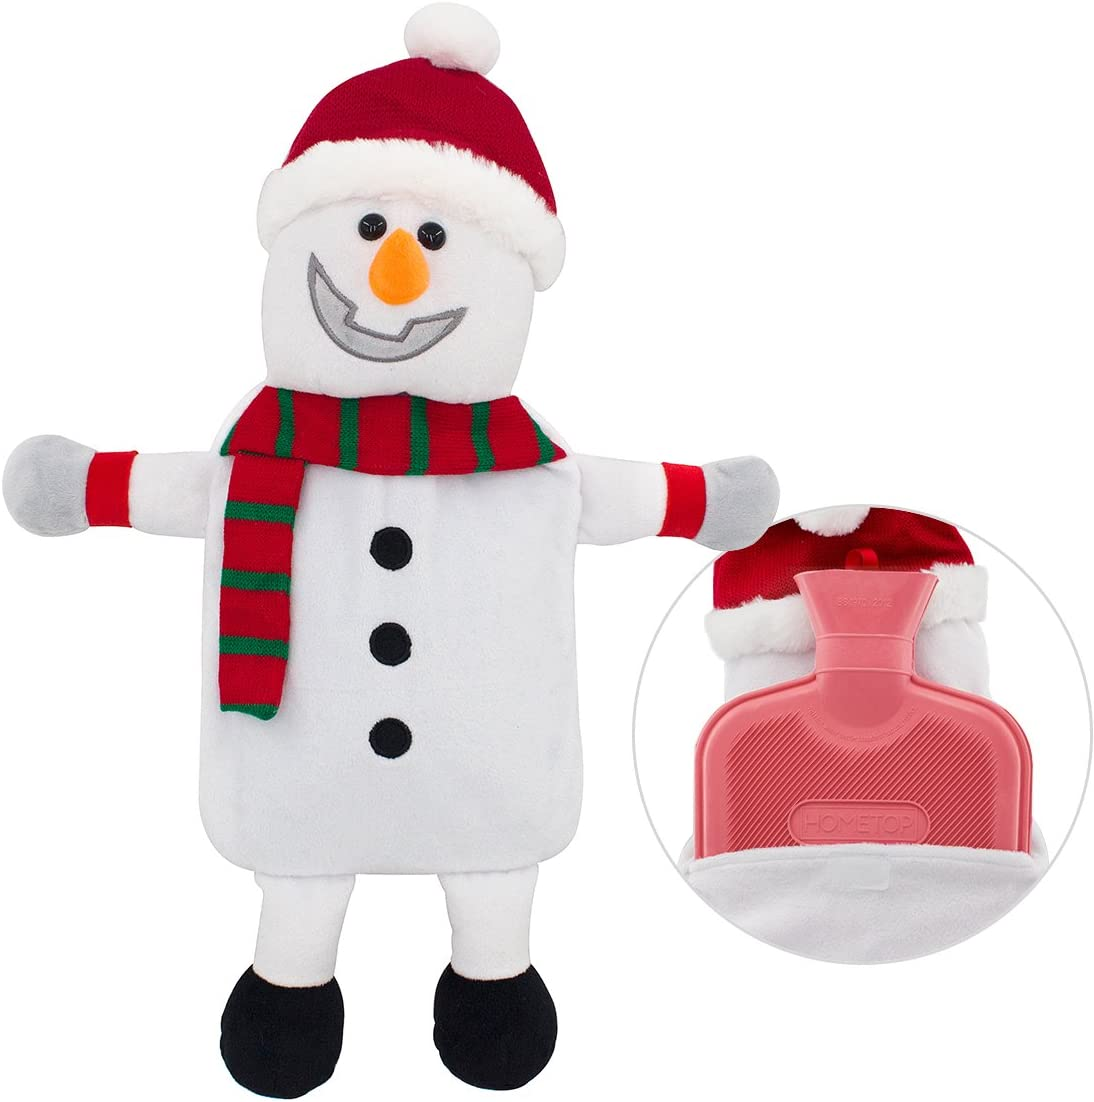 HomeTop Premium Classic Rubber Hot Water Bottle with Cute 3D Animal Cover (2L, Smiley Snowman)